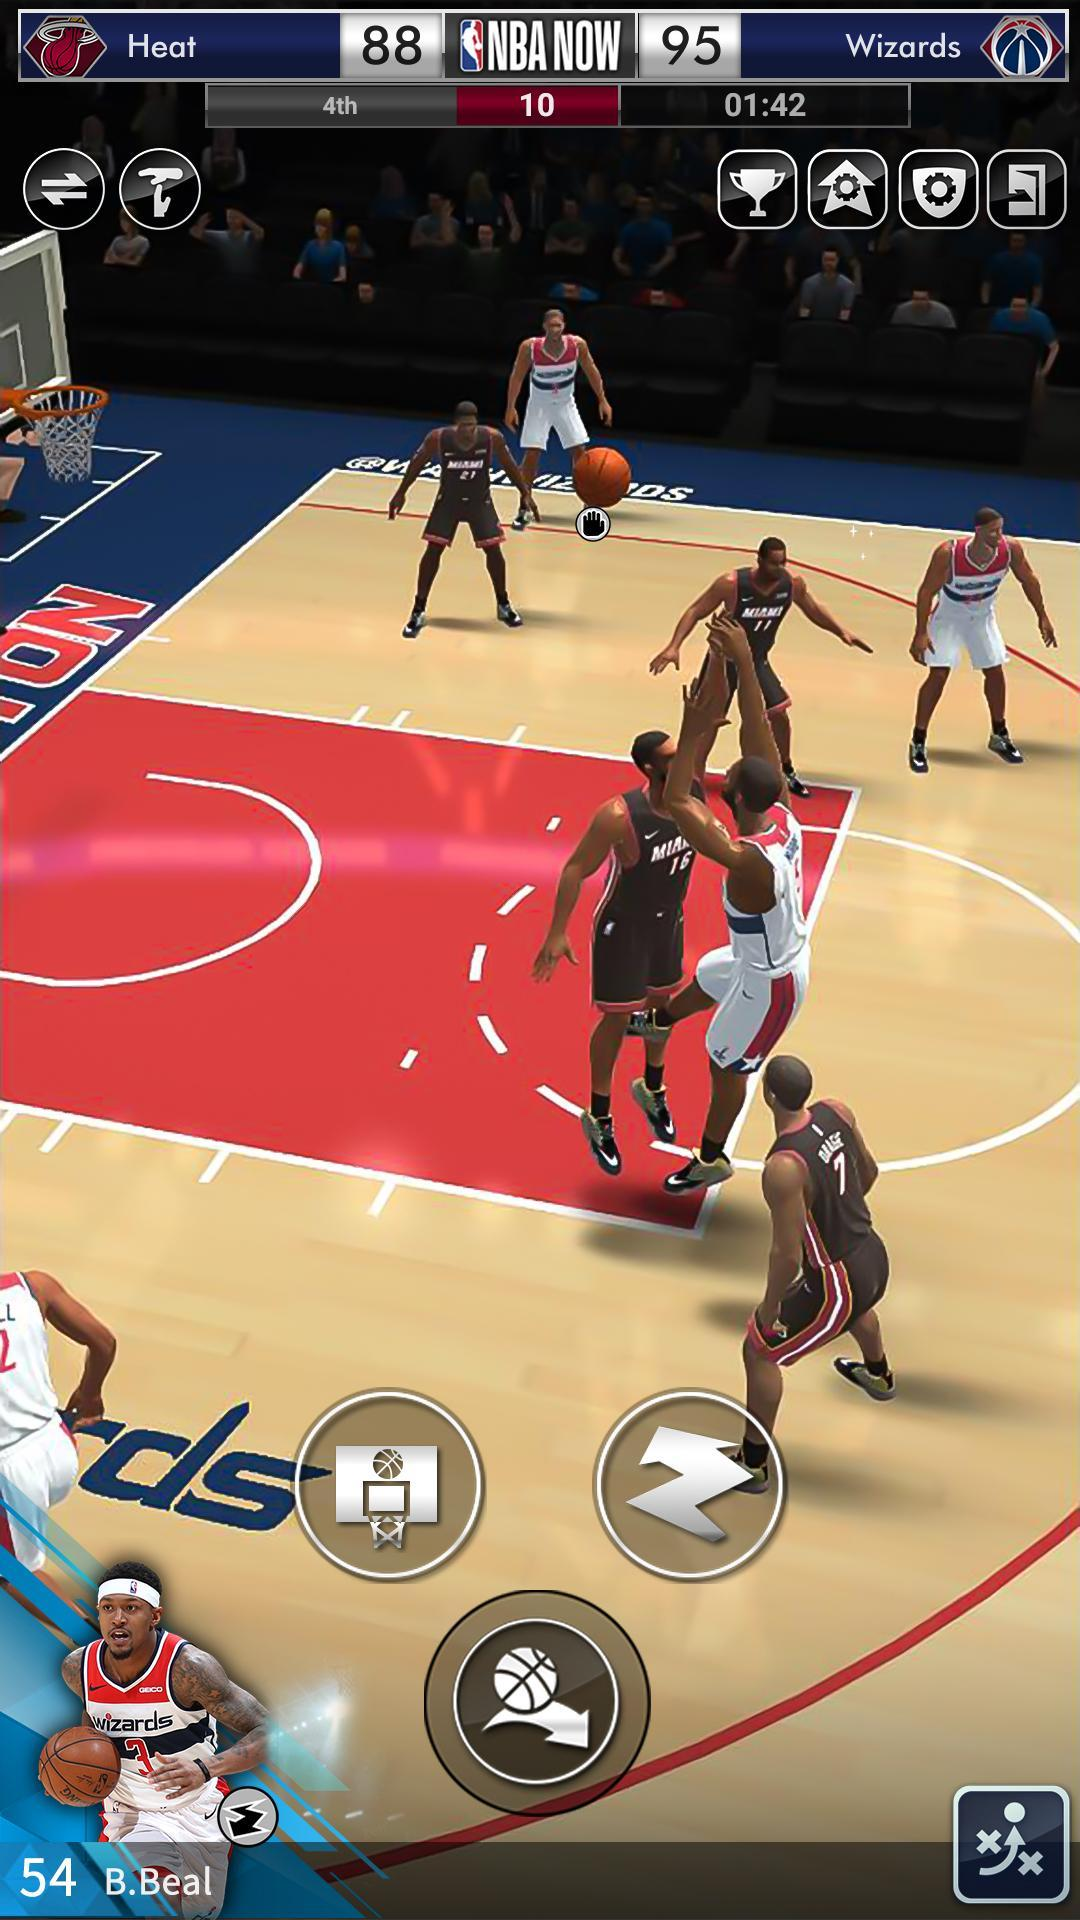 NBA NOW Mobile Basketball Game 1.5.4 Screenshot 12